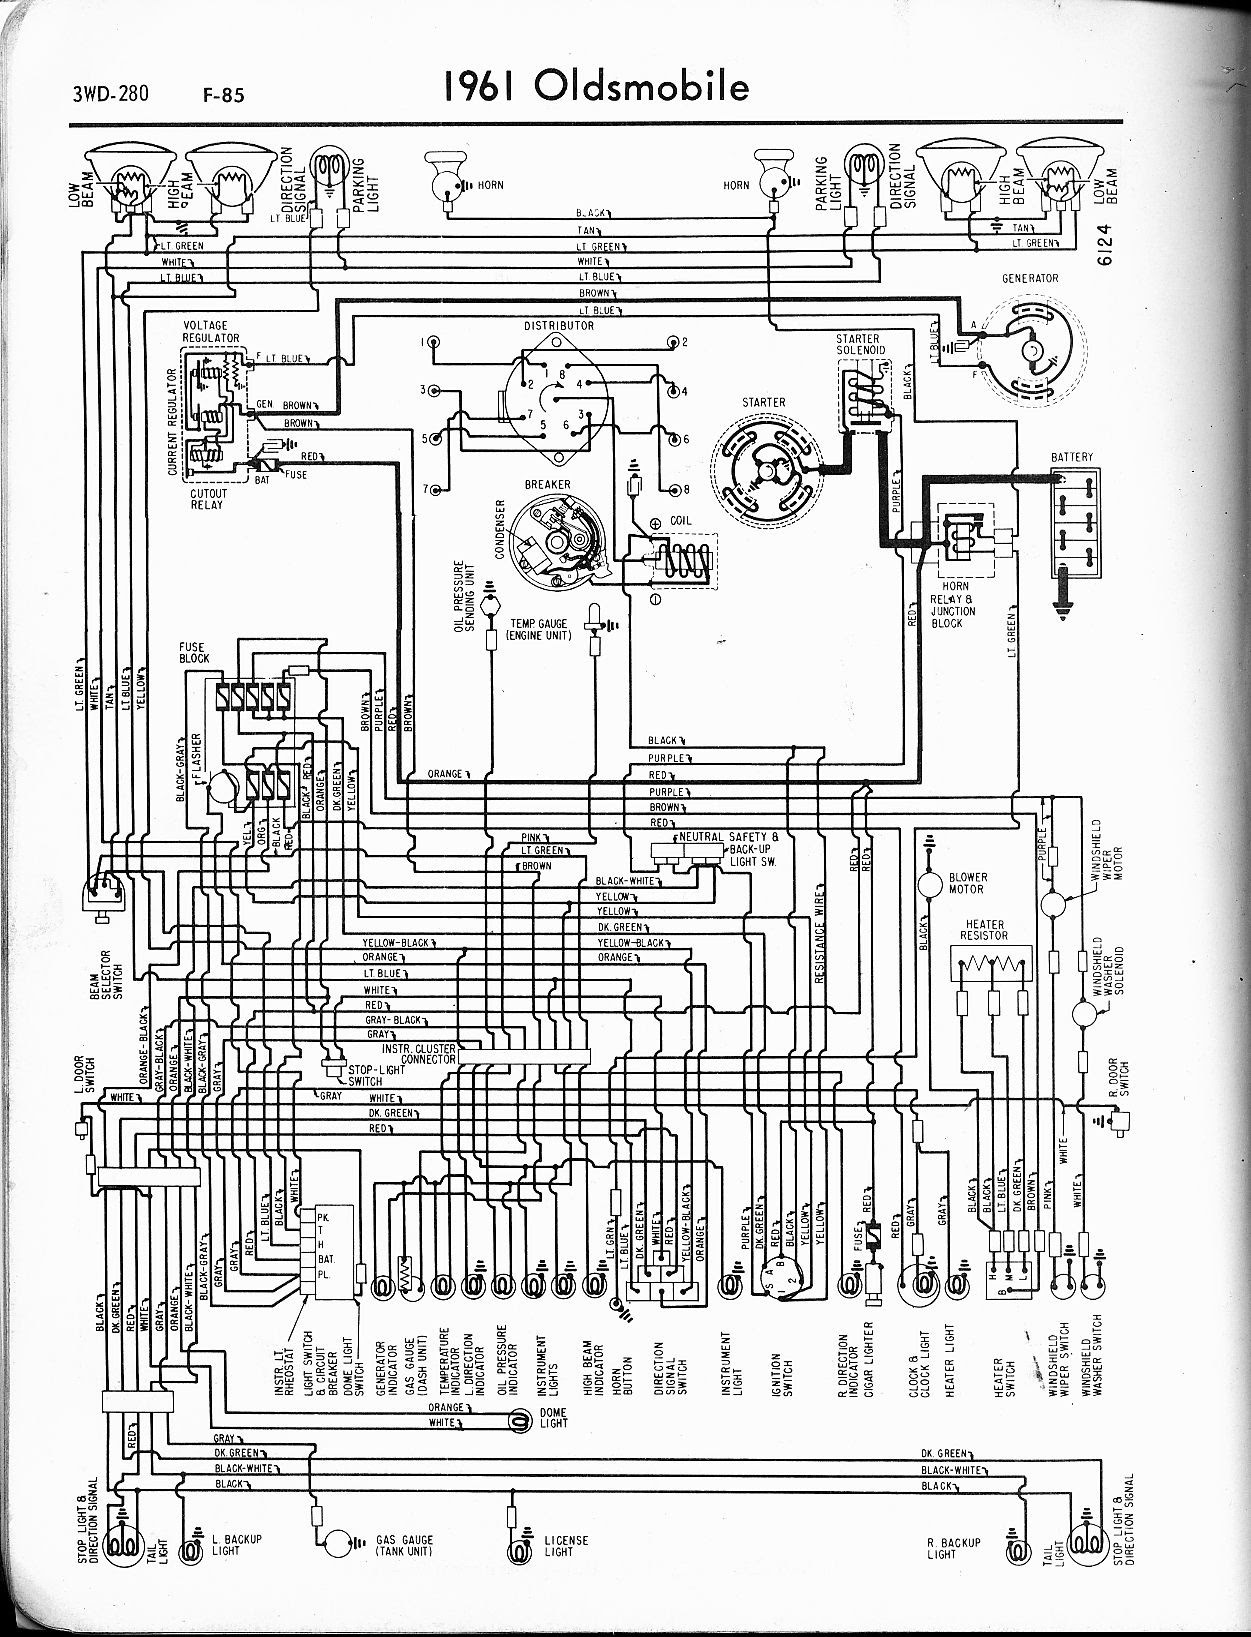 1999 Cutlas Engine Diagram - Cars Wiring Diagram Blog